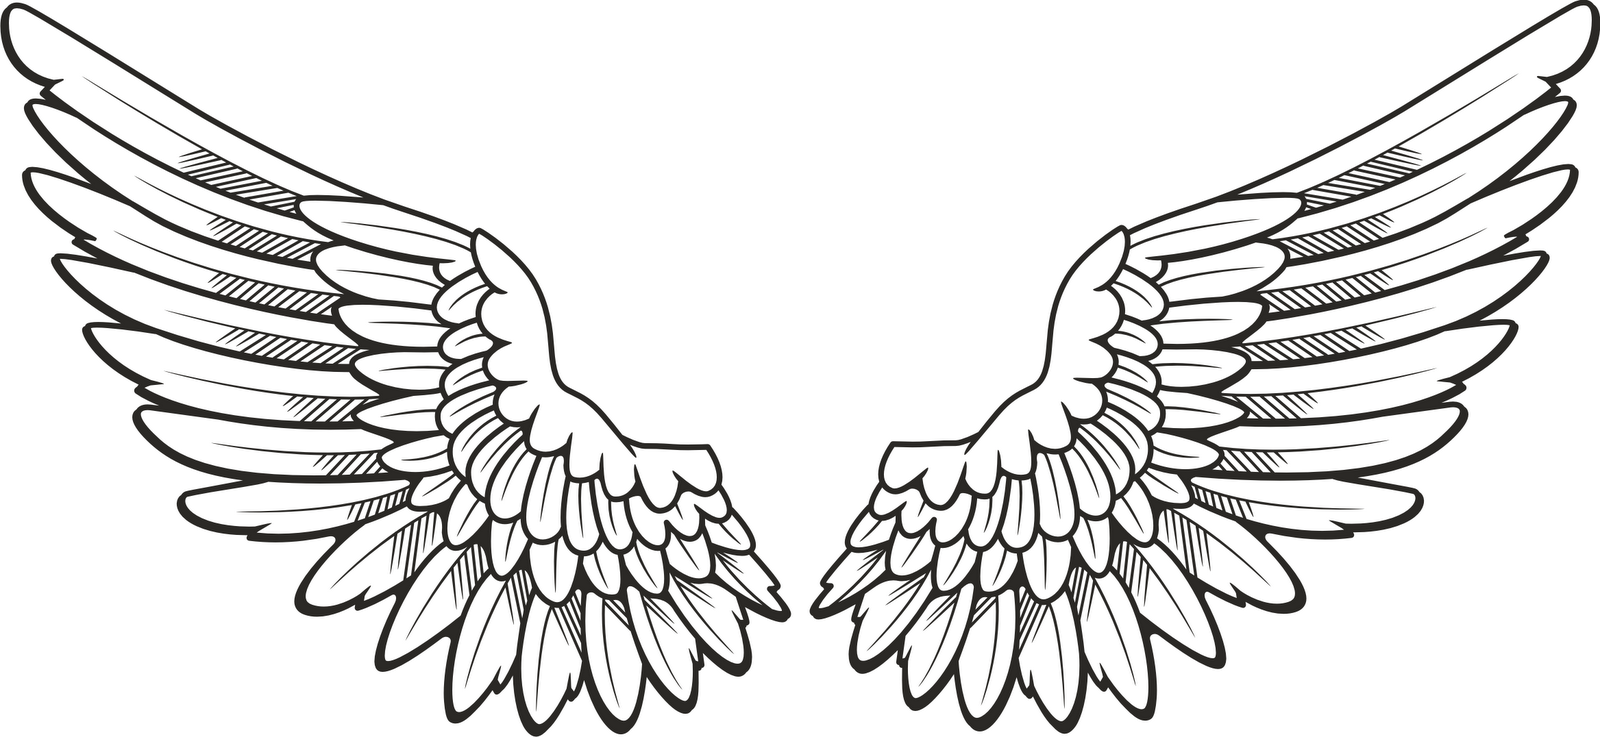 Pin By Maggienicki On Aesthetic Angel Wings Clip Art Wings Tattoo Wing Neck Tattoo